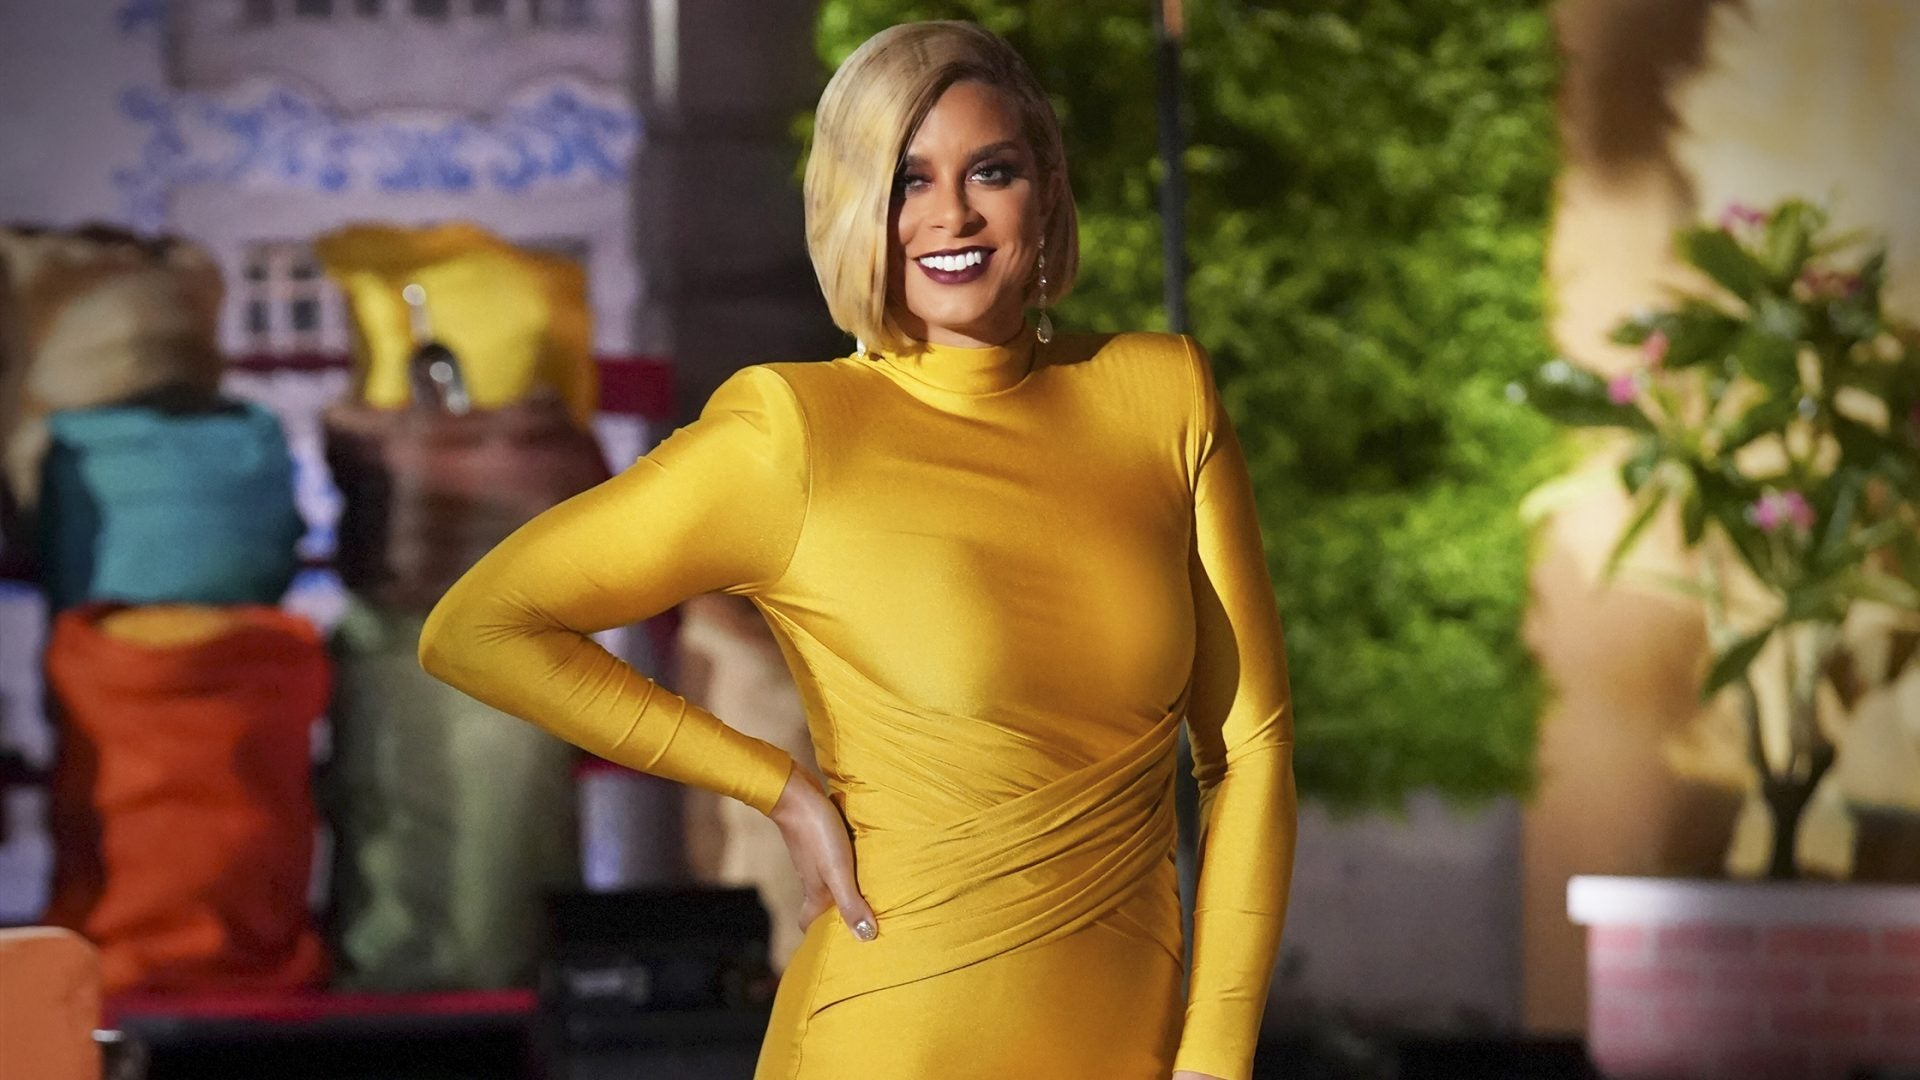 Robyn Dixon Denies She's Been Fired From 'Real Housewives Of Potomac'